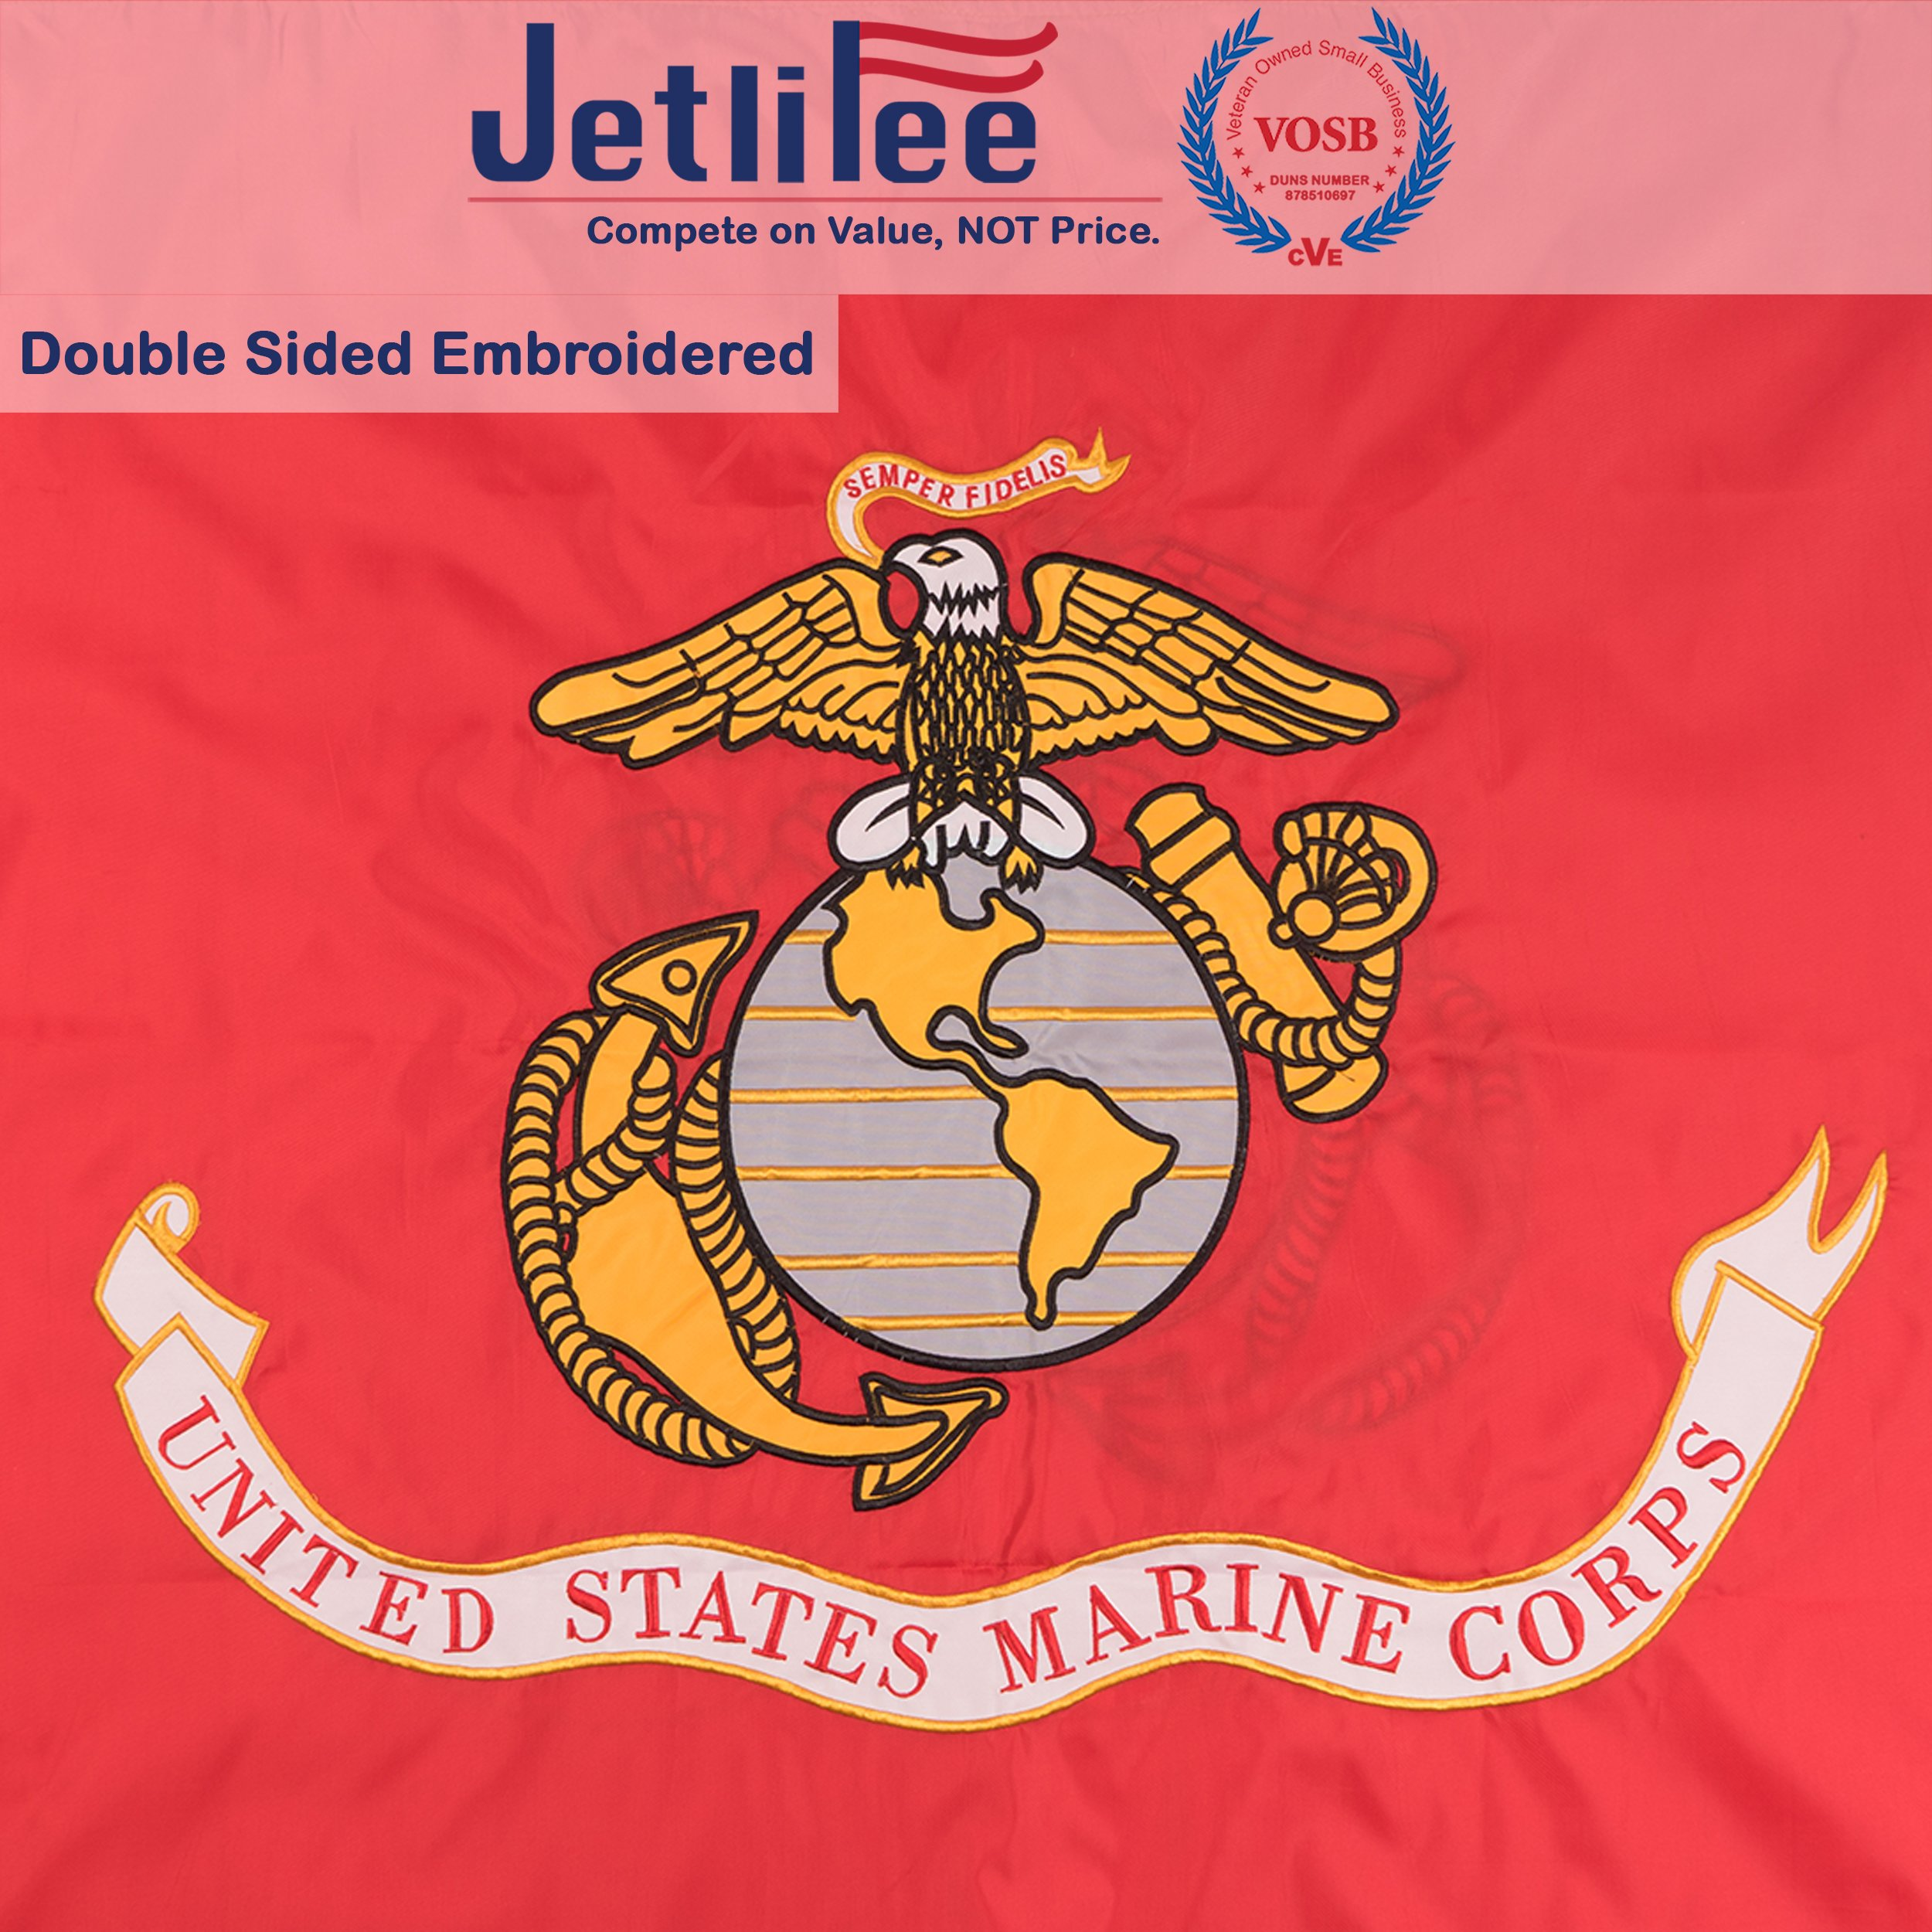 Jetlifee USMC 3x5 Ft Double Sided Flag by Veteran Owned Biz. Heavy Duty Nylon Embroidered With Brass Grommets U.S. Marine Corps Military Flag 3 x 5 Foot All Weather UV Protected USMC Decorative Flags